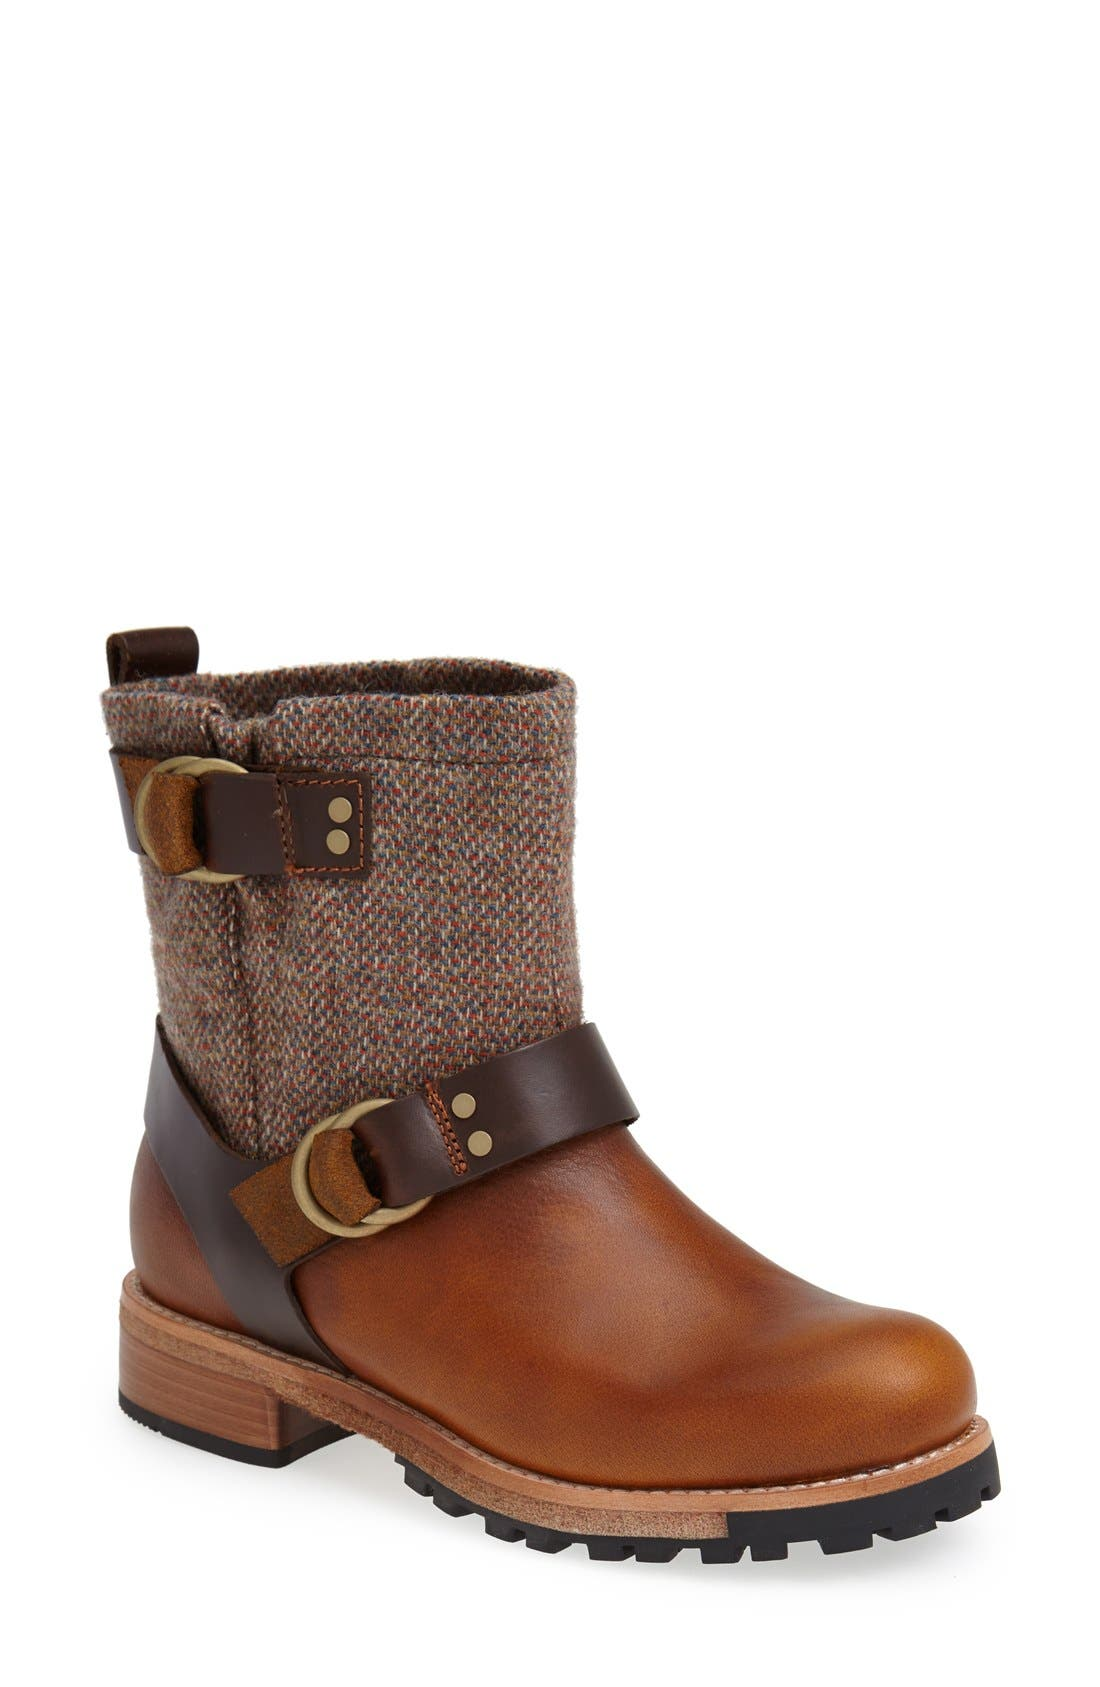 'Baltimore' Engineer Boot,                         Main,                         color, Light Brown